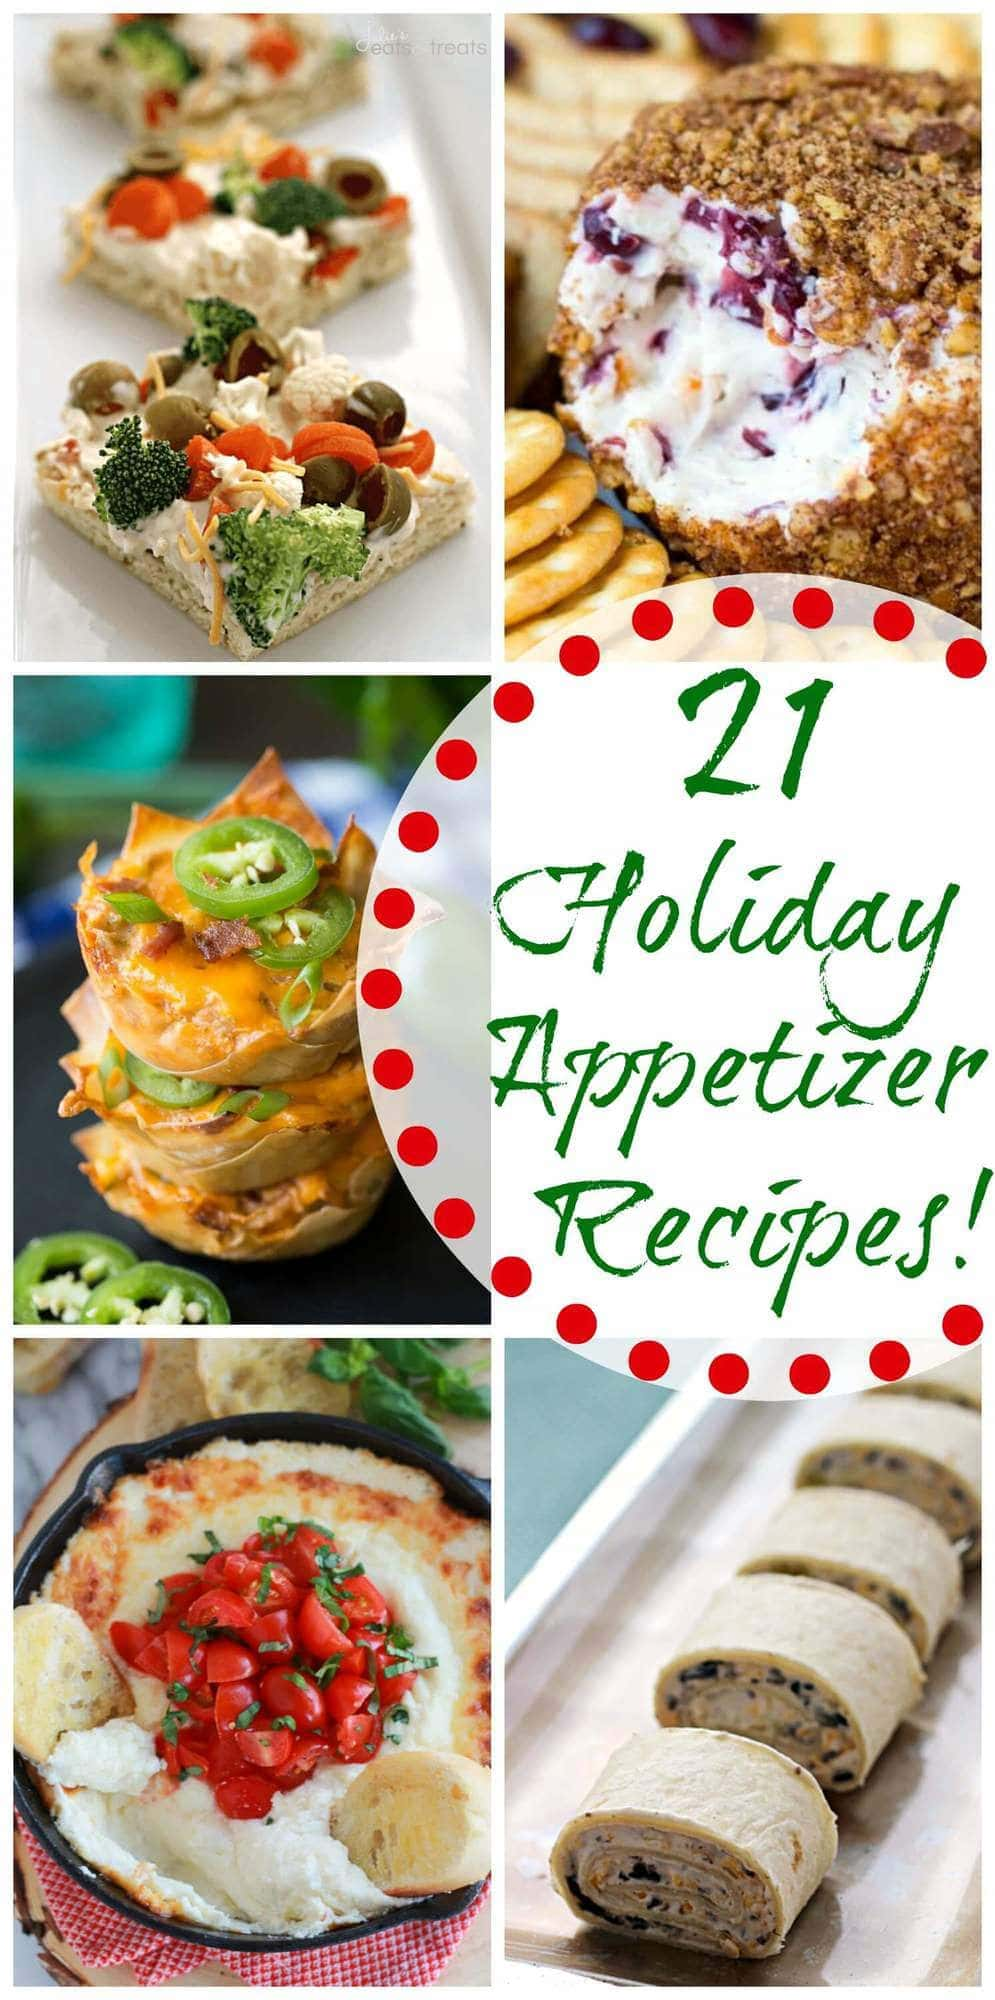 appetizer recipes holiday appetizers parties pizza cold cheese perfect wontons balls everything christmas recipe eats treats giveaway julie